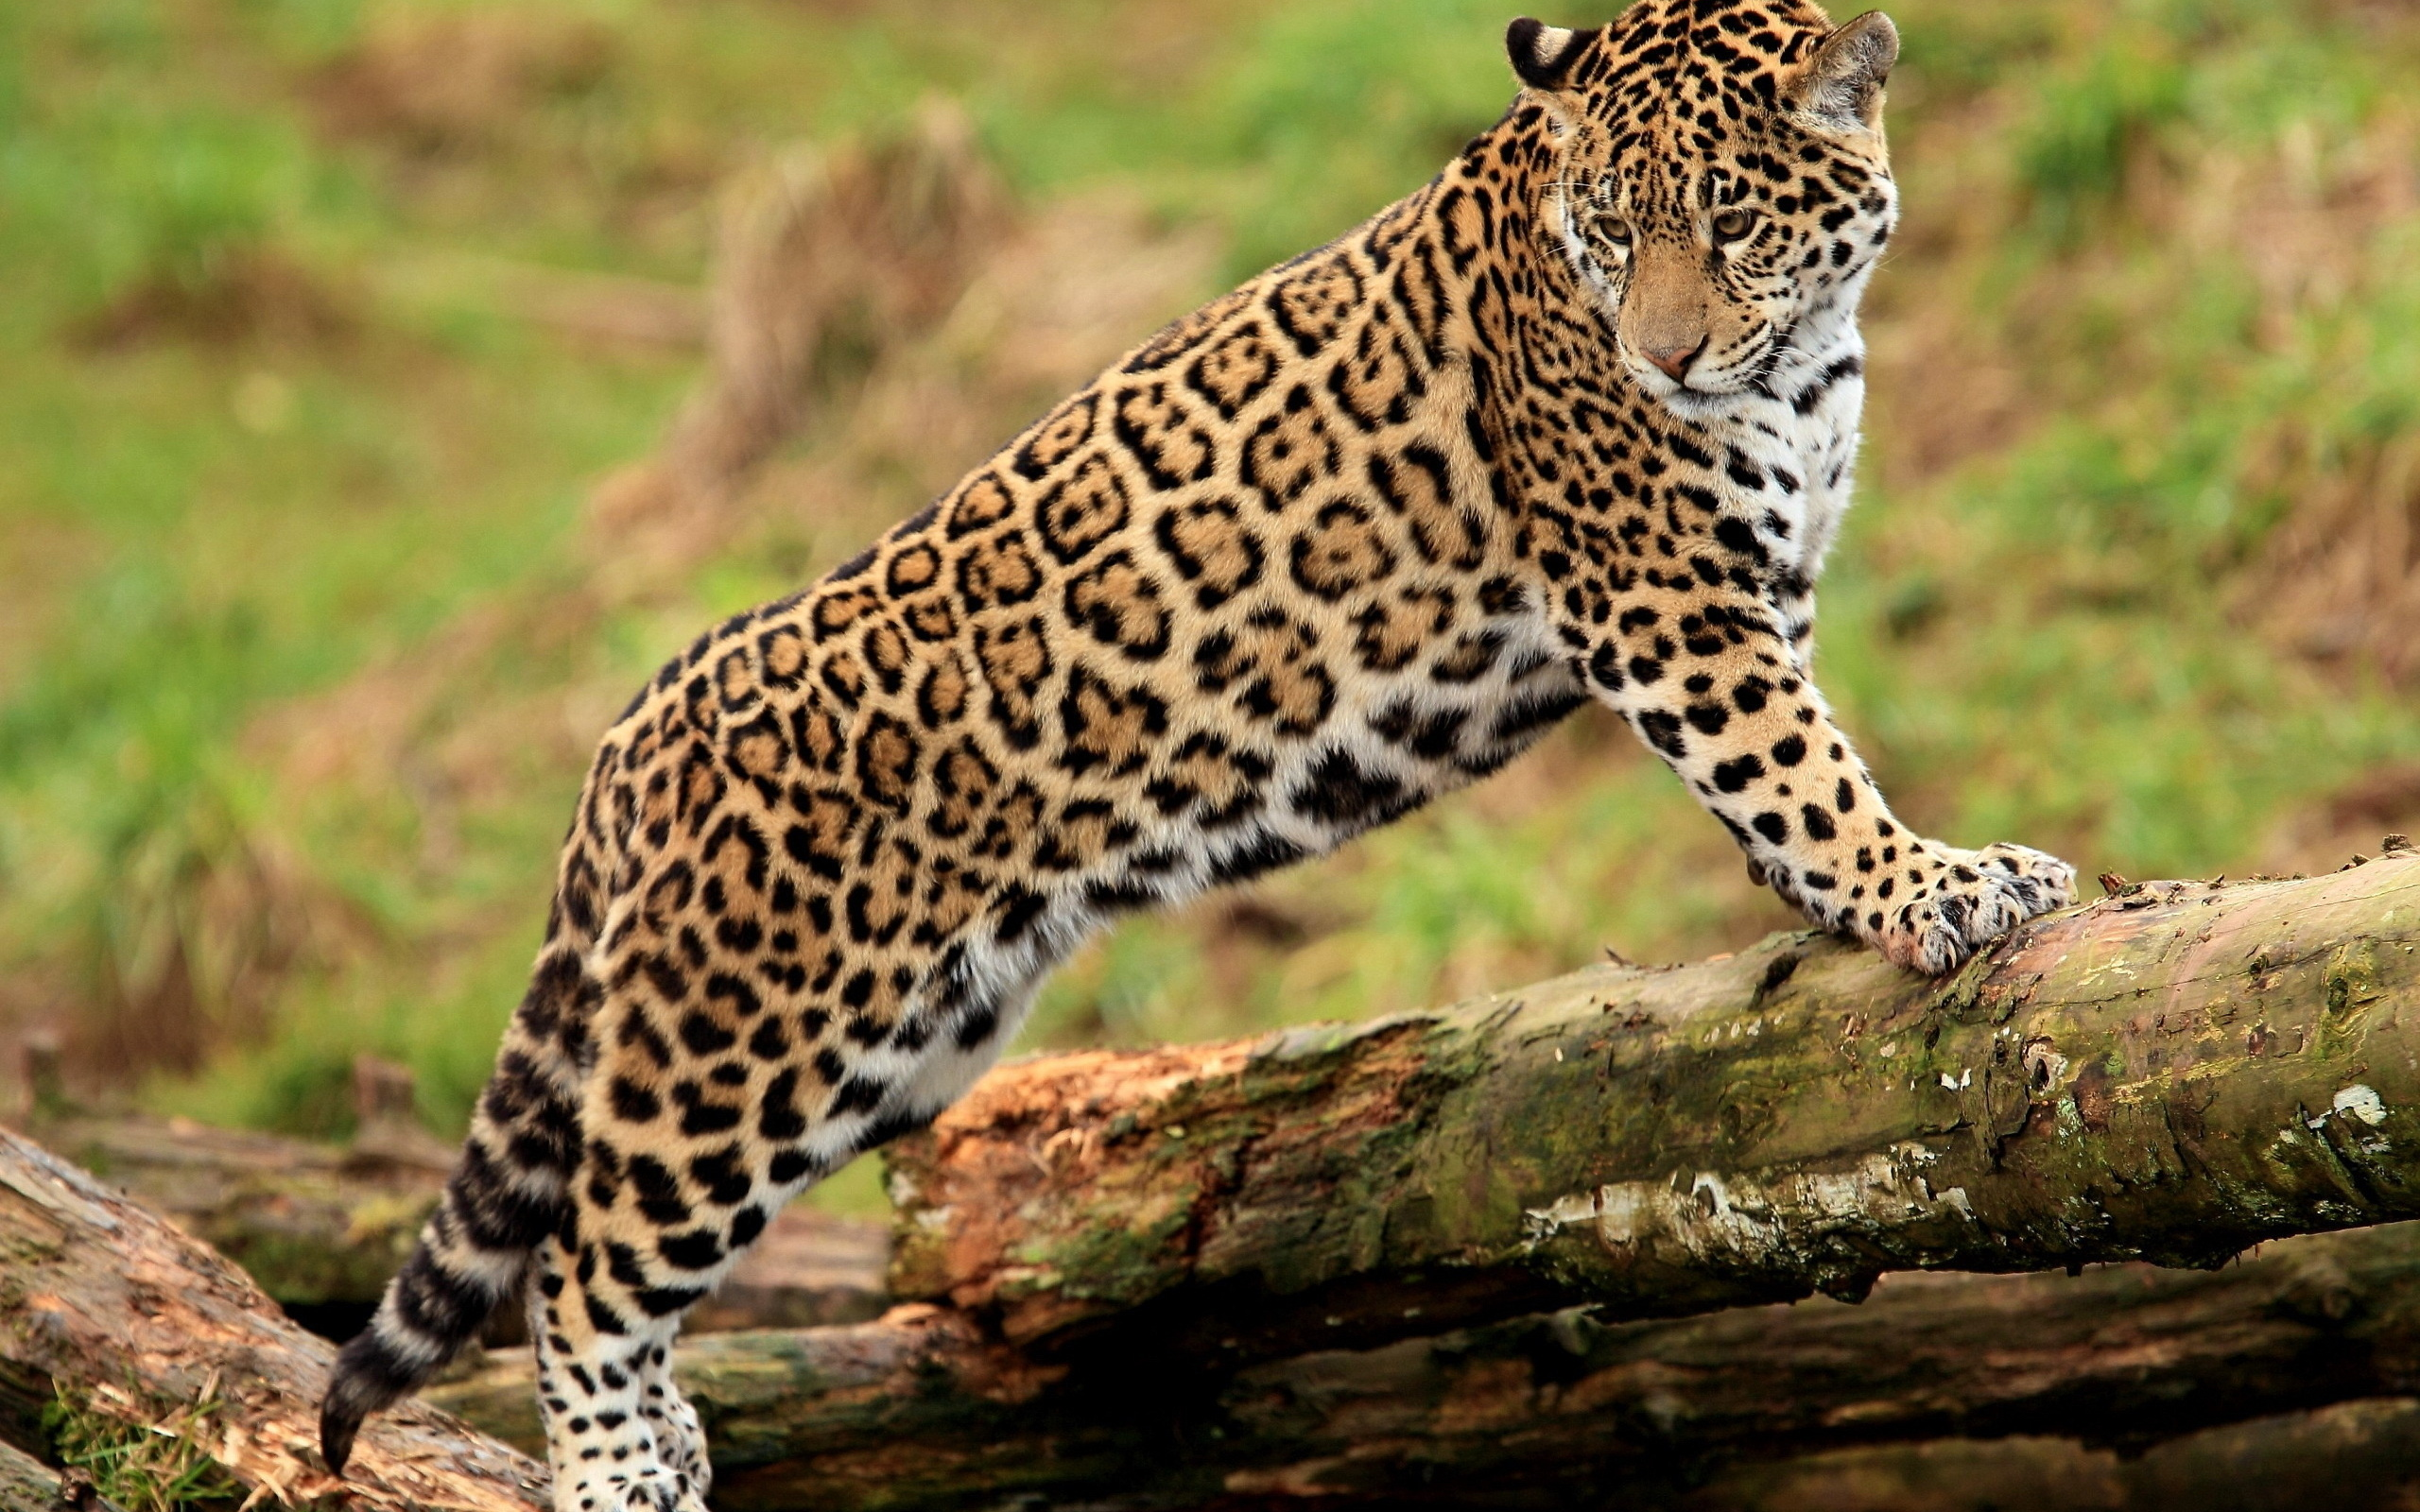 Jaguar wallpaper beautiful hd desktop wallpapers 4k hd - Jaguar animal hd wallpapers ...